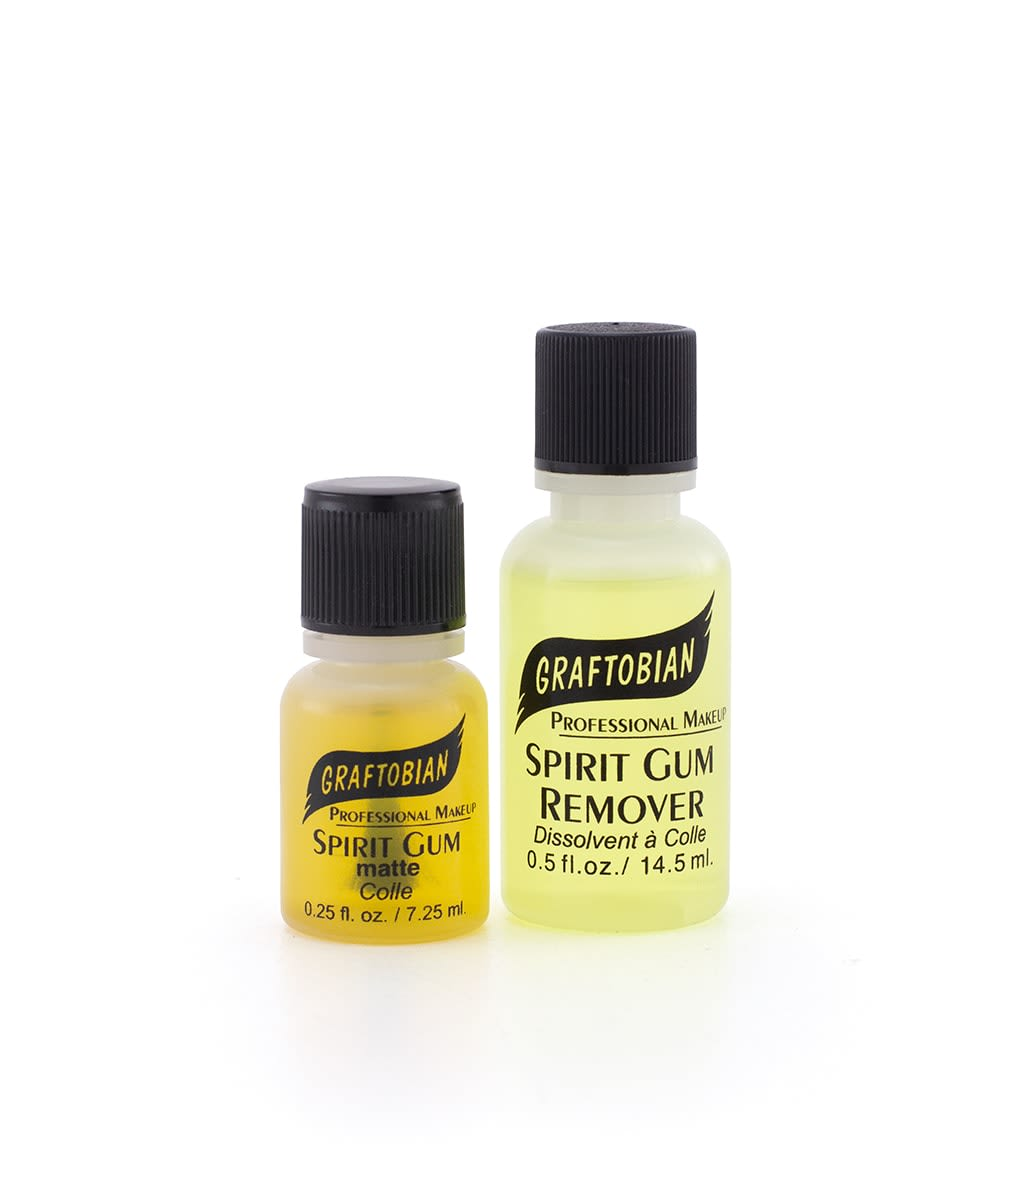 Spirit Gum and Remover Sets